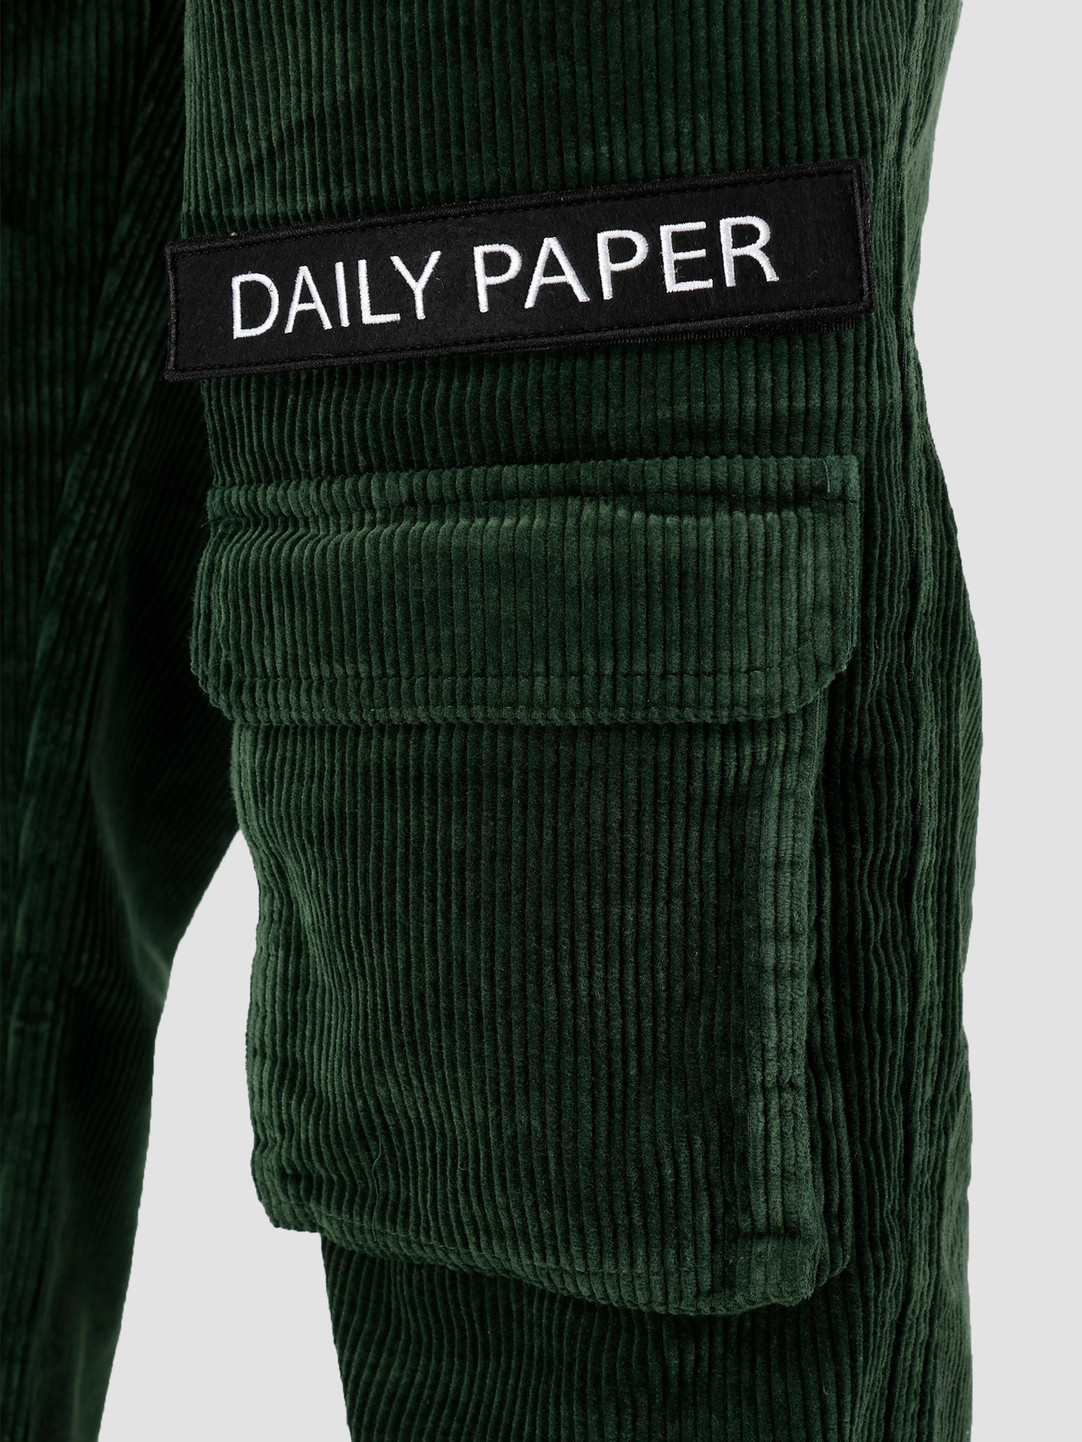 Daily Paper Daily Paper Cargo Pants Corduroy Mountain View Green 19H1PA0201